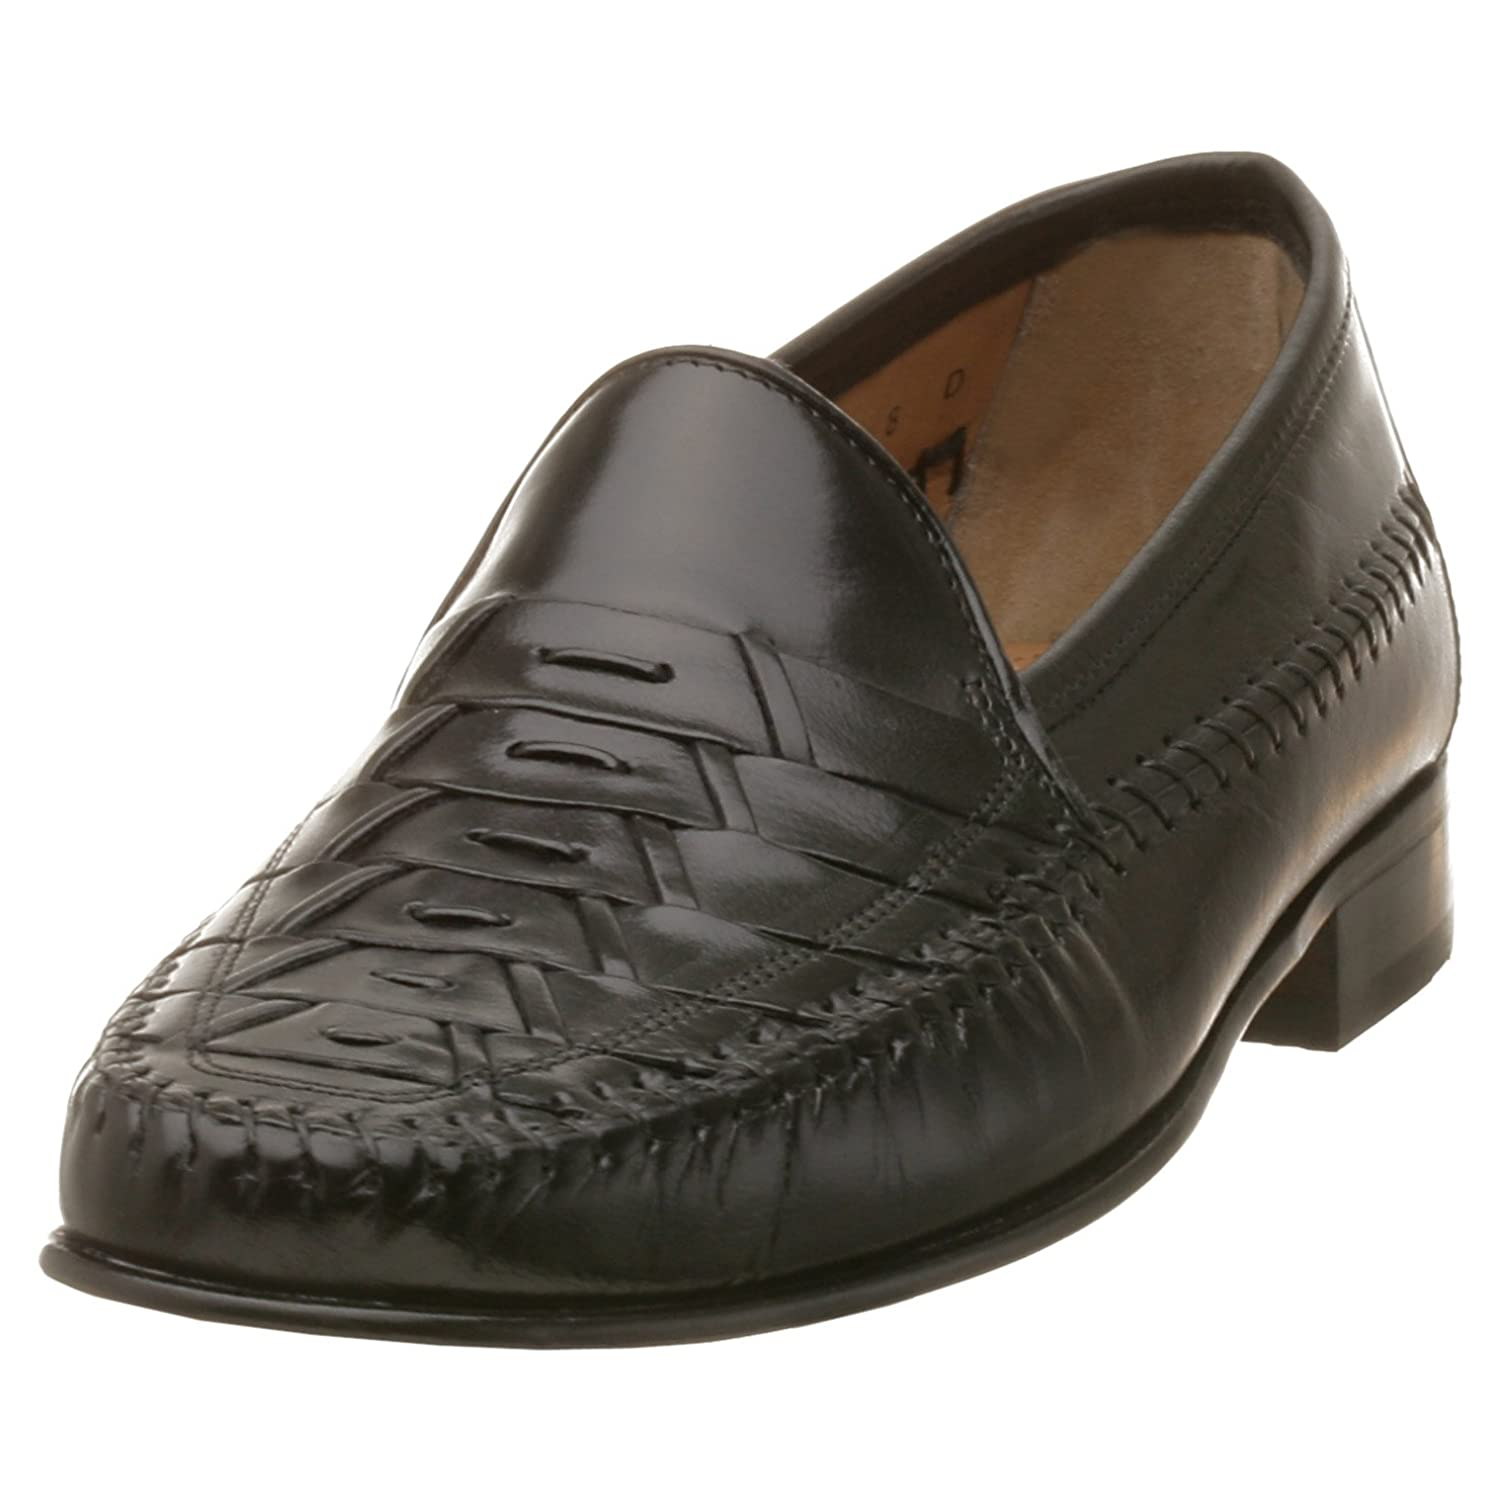 Florsheim Men's Bridgeport Loafer